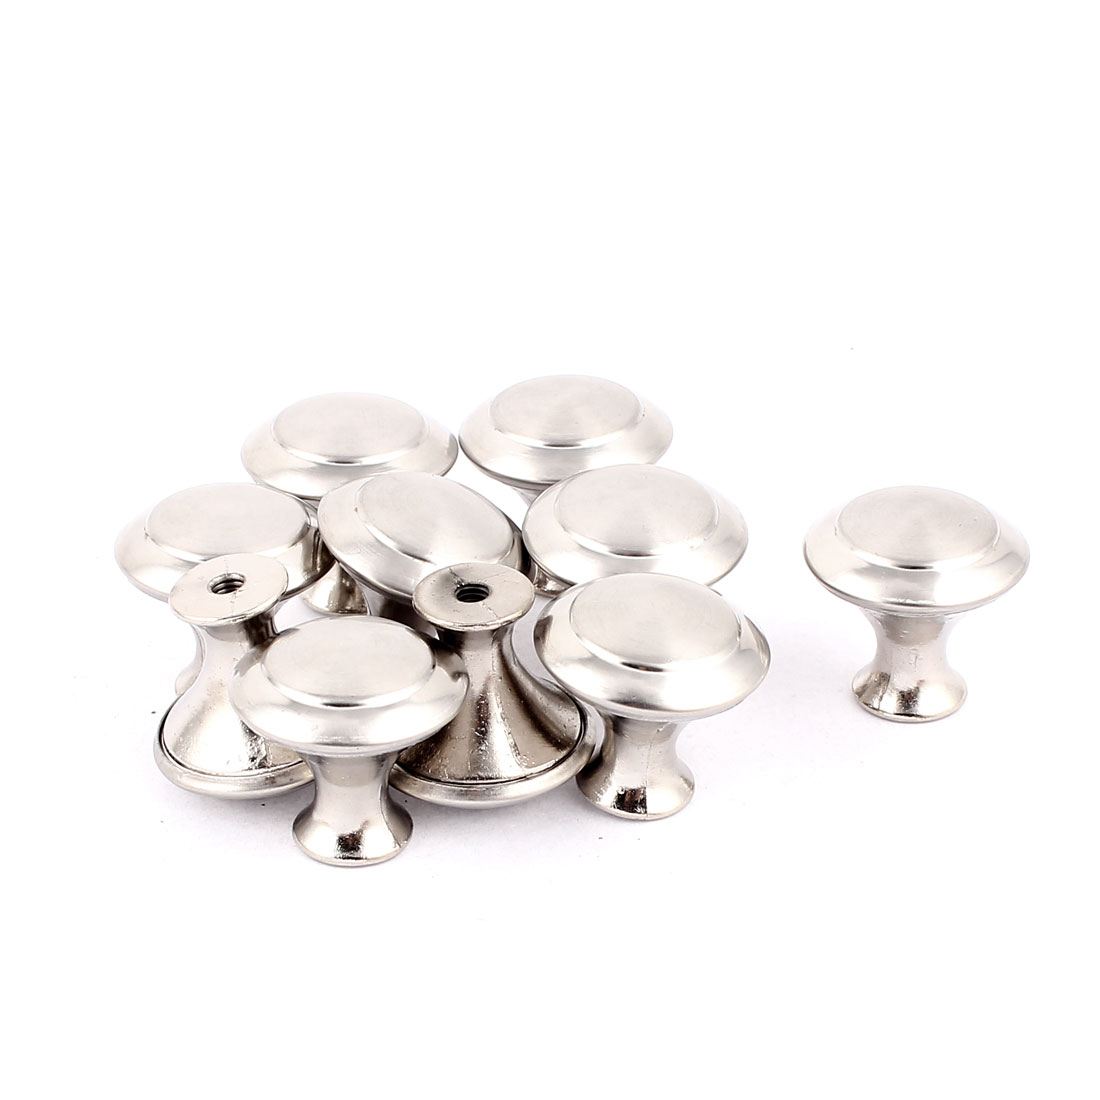 10 Pcs Screw Mounted Drawer Cupboard Cabinet Door Round Pull Knobs Silver Tone w Screws